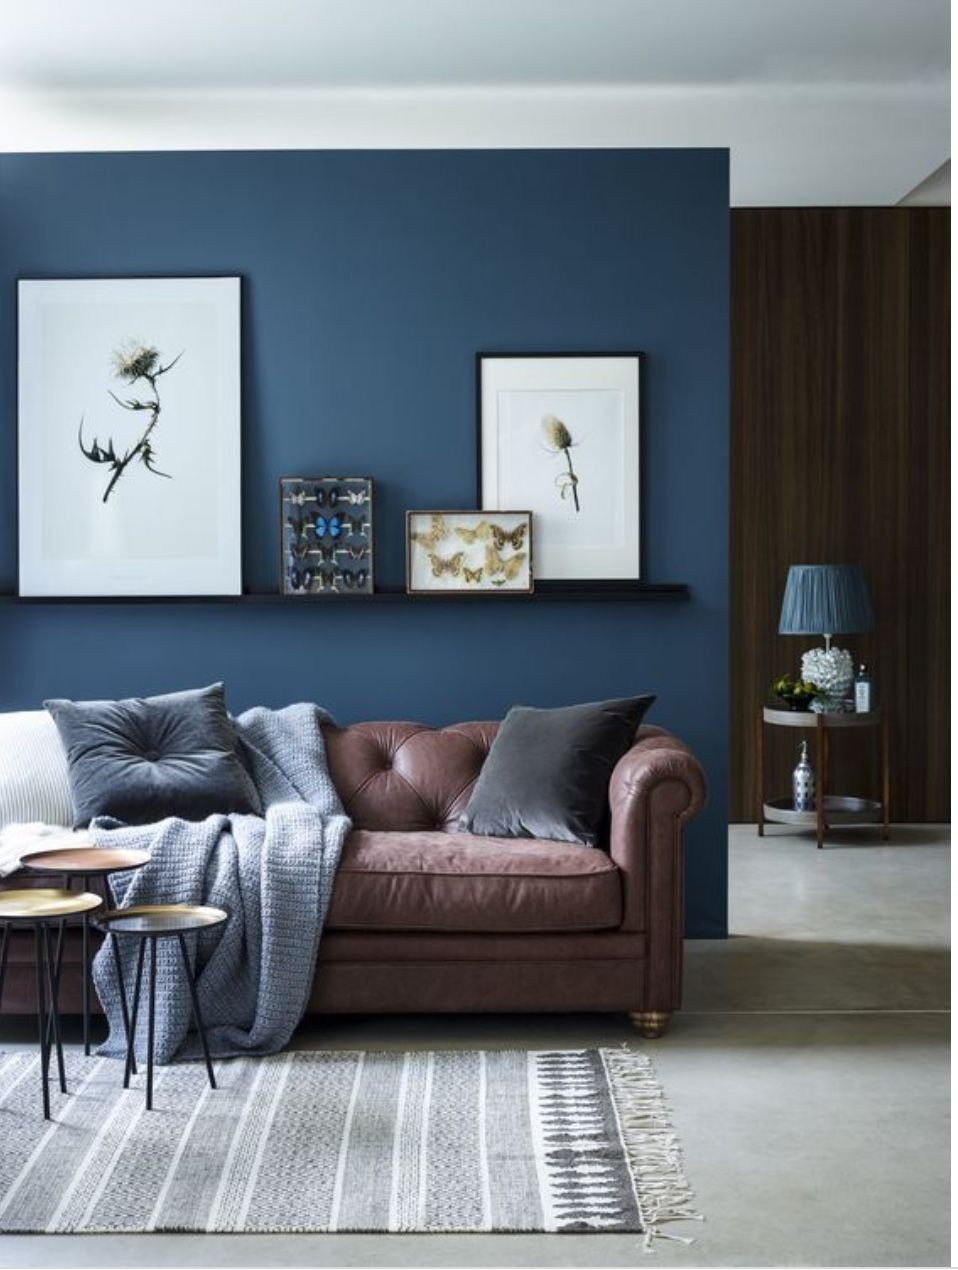 Pin By Eirini Polidorou On Decor Ideas Brown Couch Living Room Brown And Blue Living Room Living Room Paint